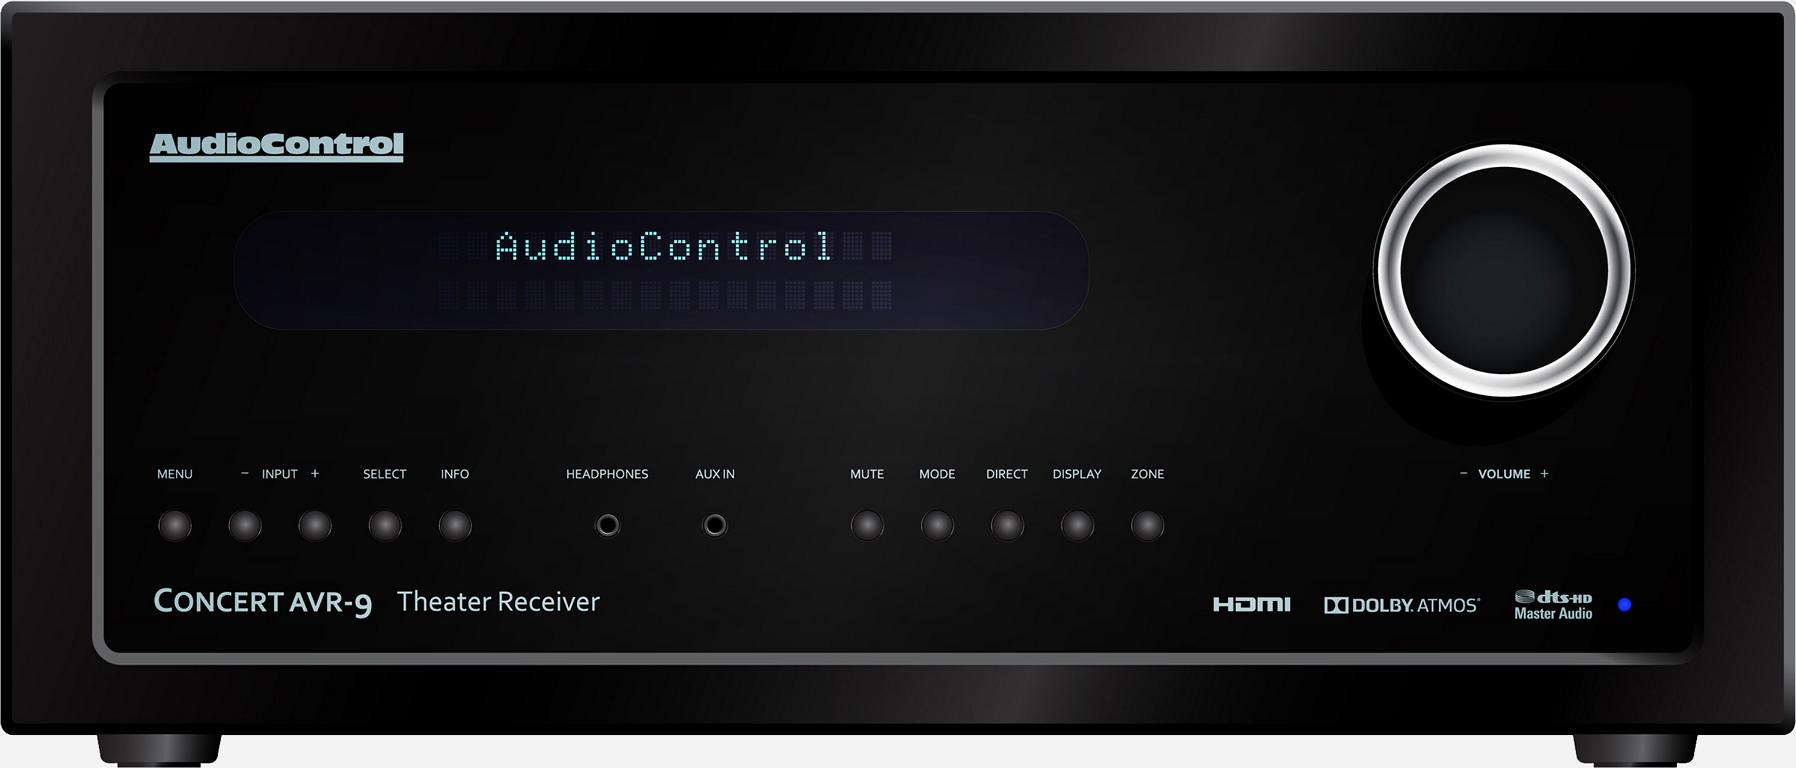 AudioControl AVR-9